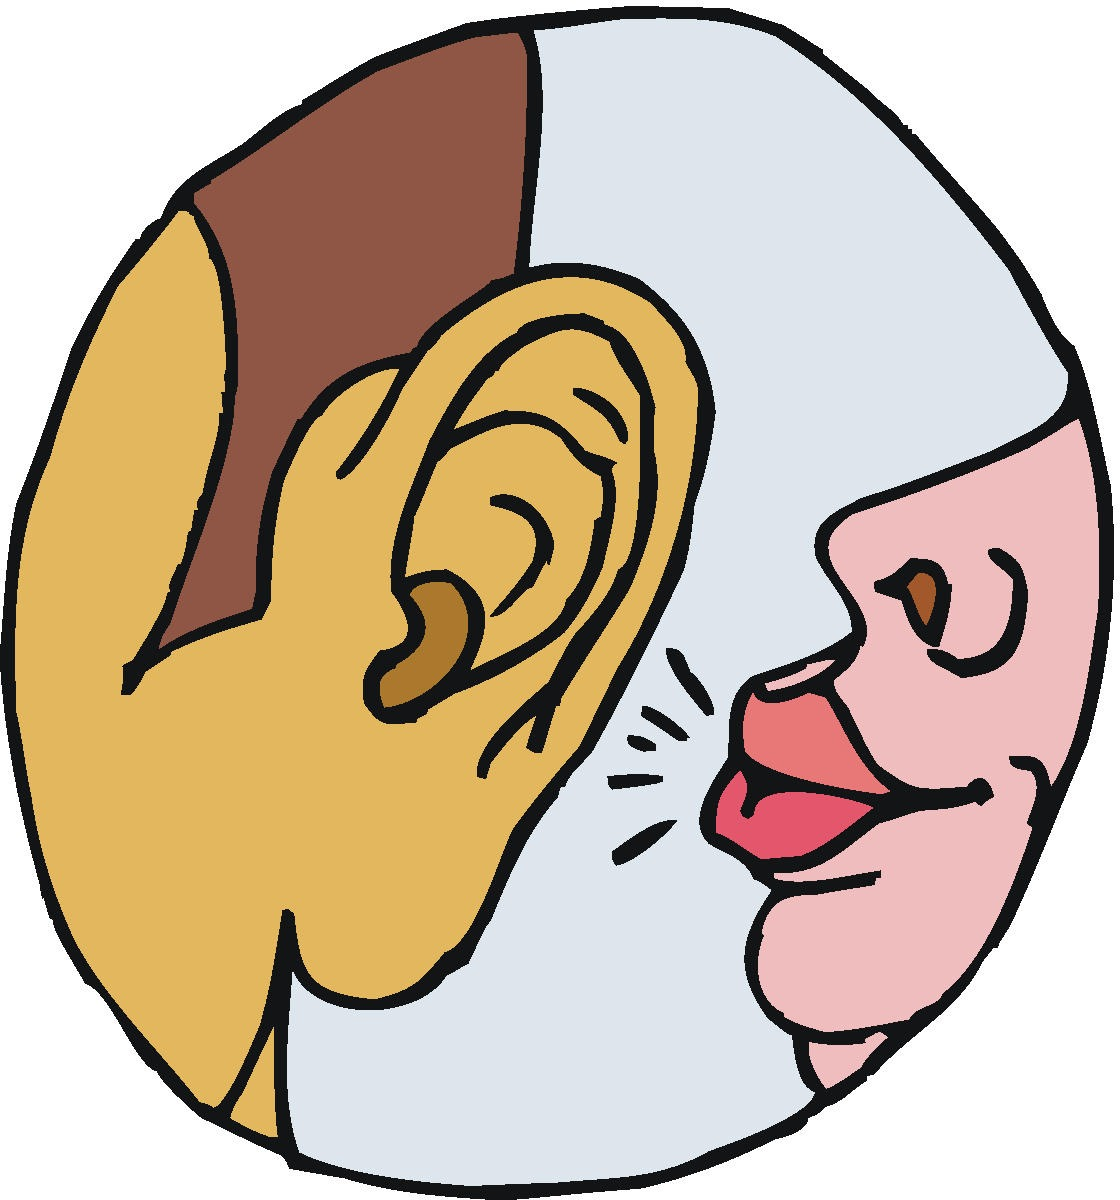 Listening Ears Clip Art - Cliparts.co